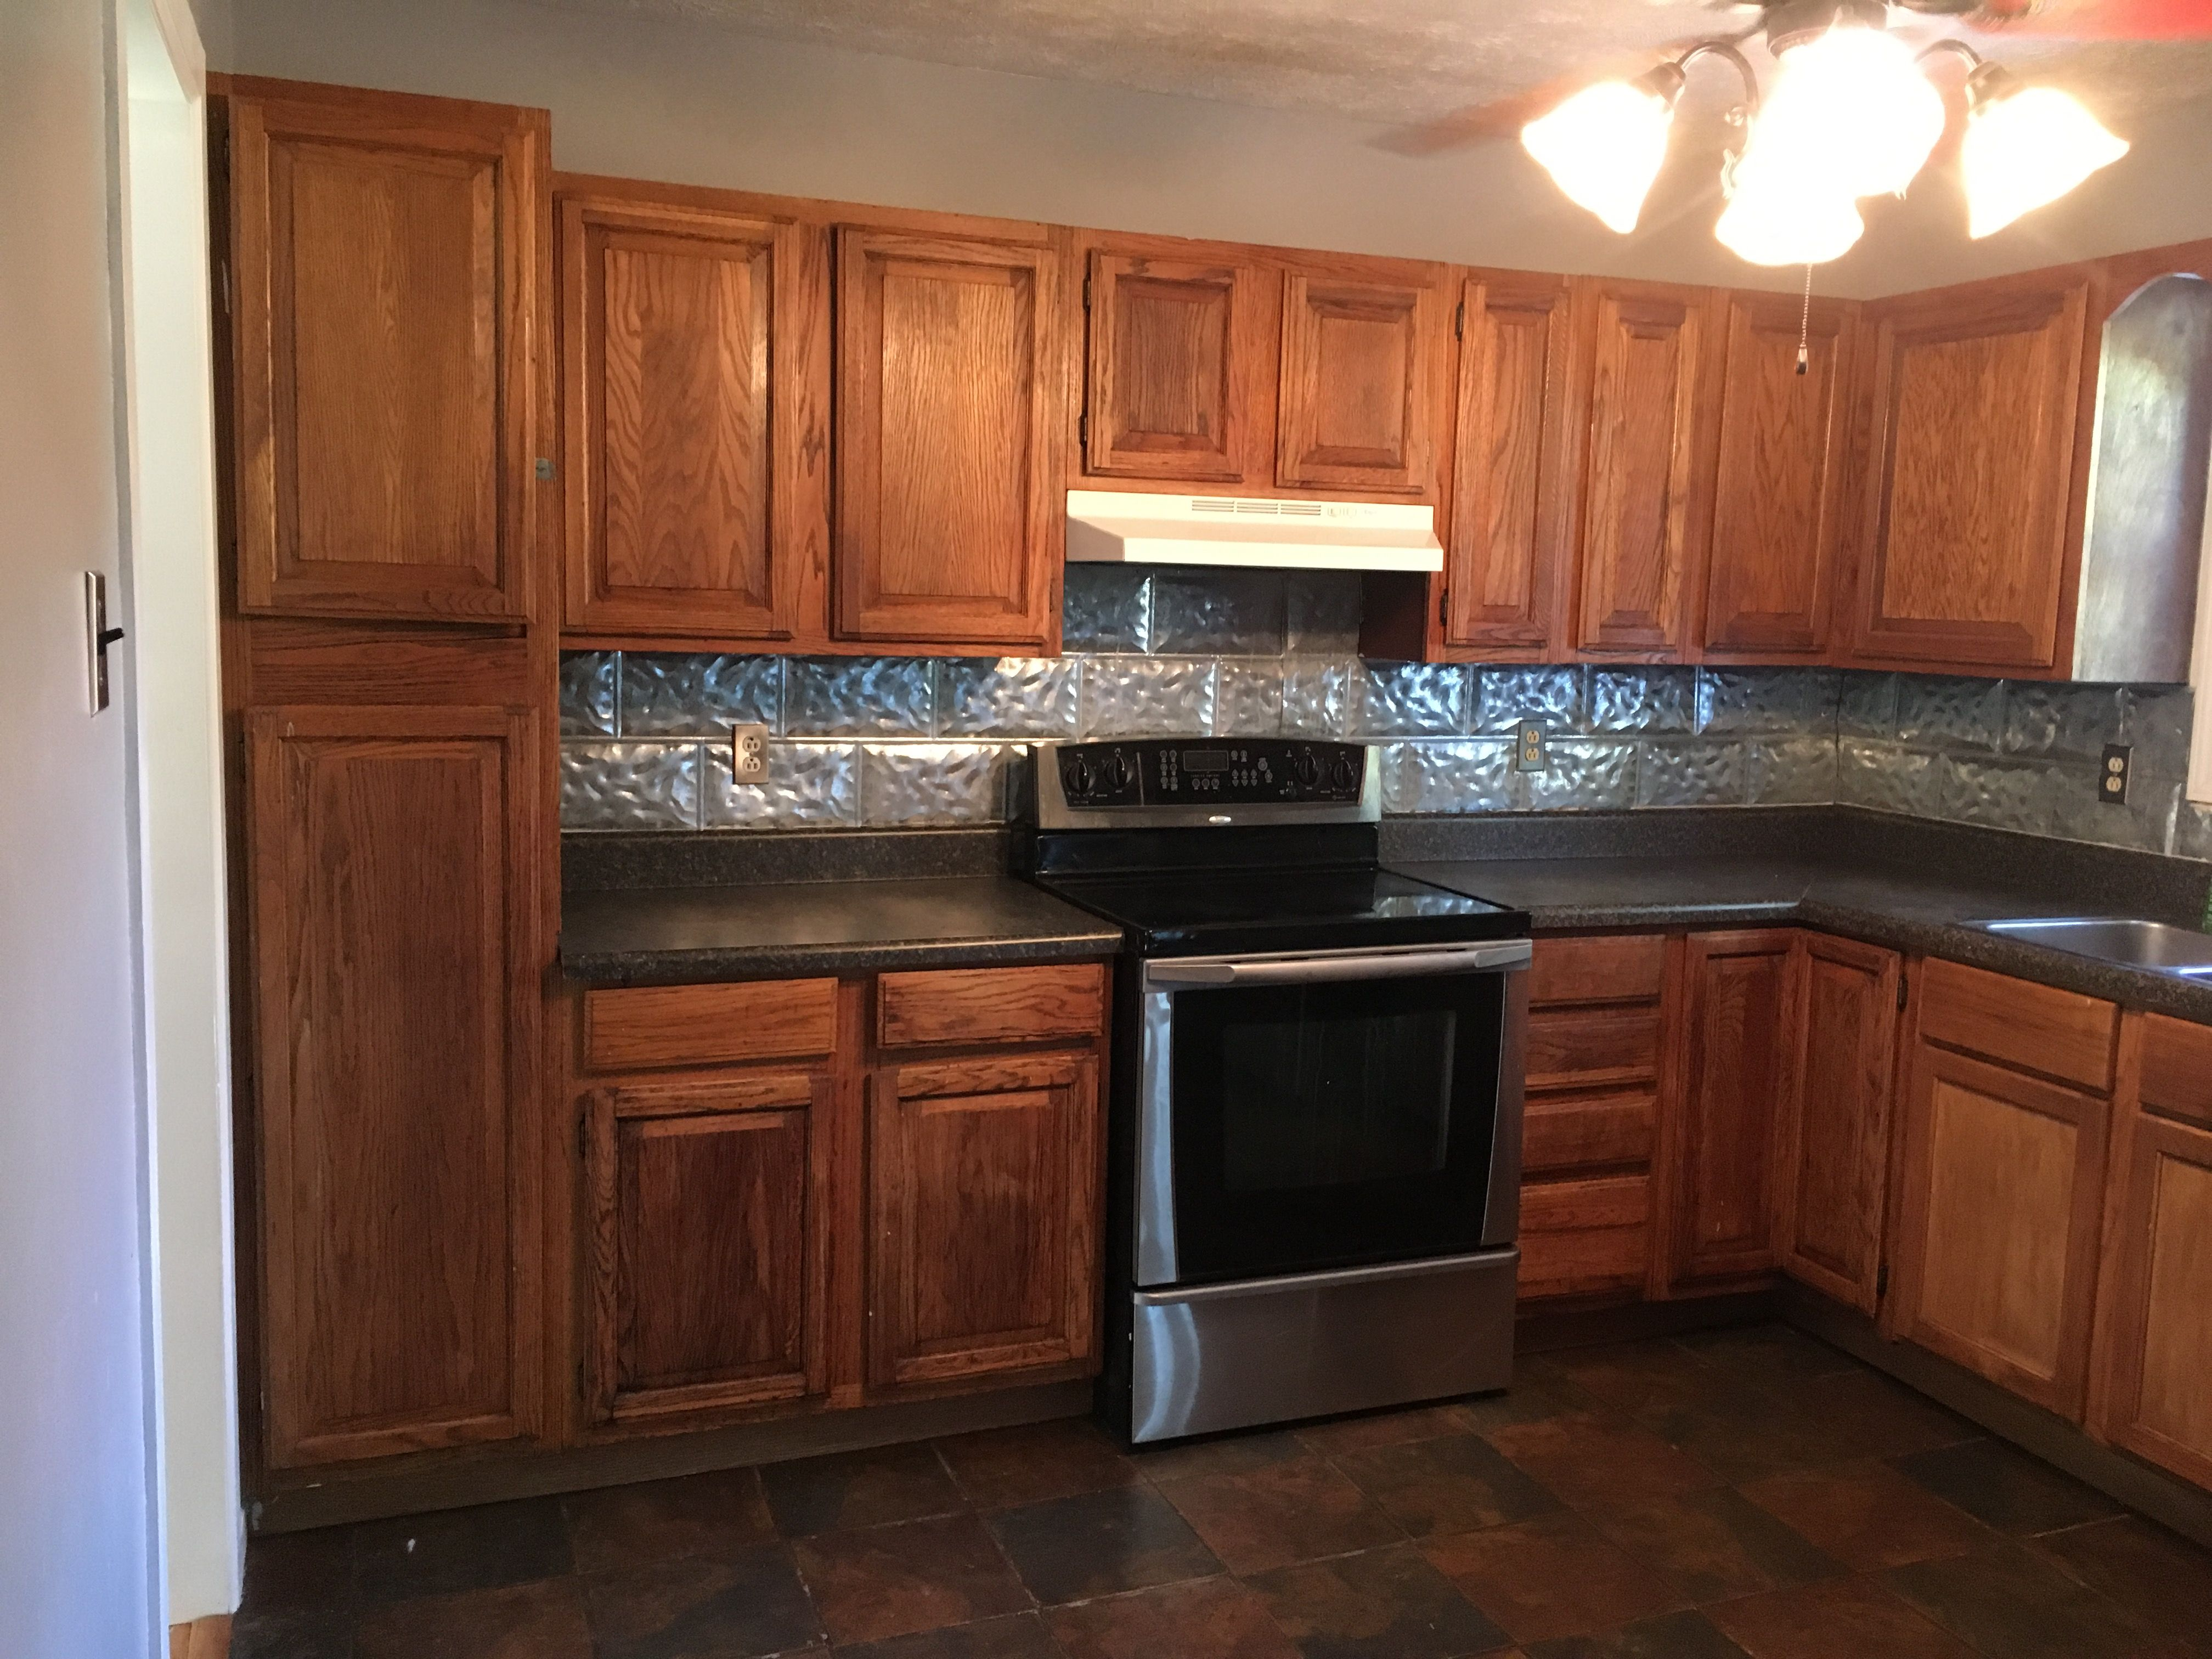 Knoxville kitchen Before   Kitchen, Kitchen cabinets, Home ...